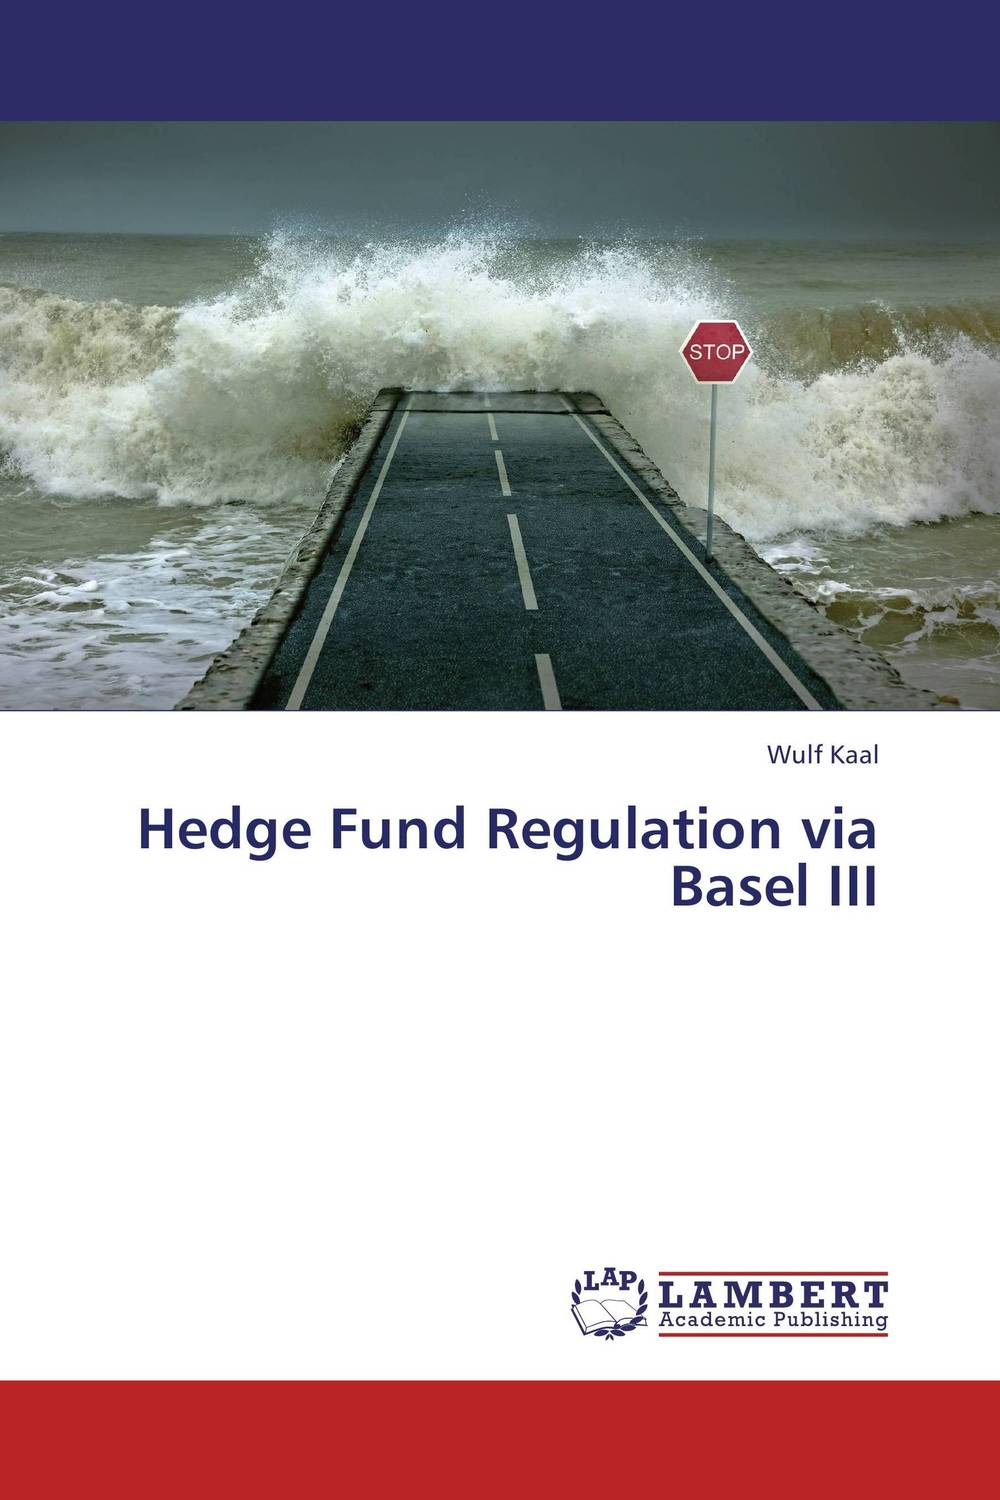 Hedge Fund Regulation via Basel III sean casterline d investor s passport to hedge fund profits unique investment strategies for today s global capital markets